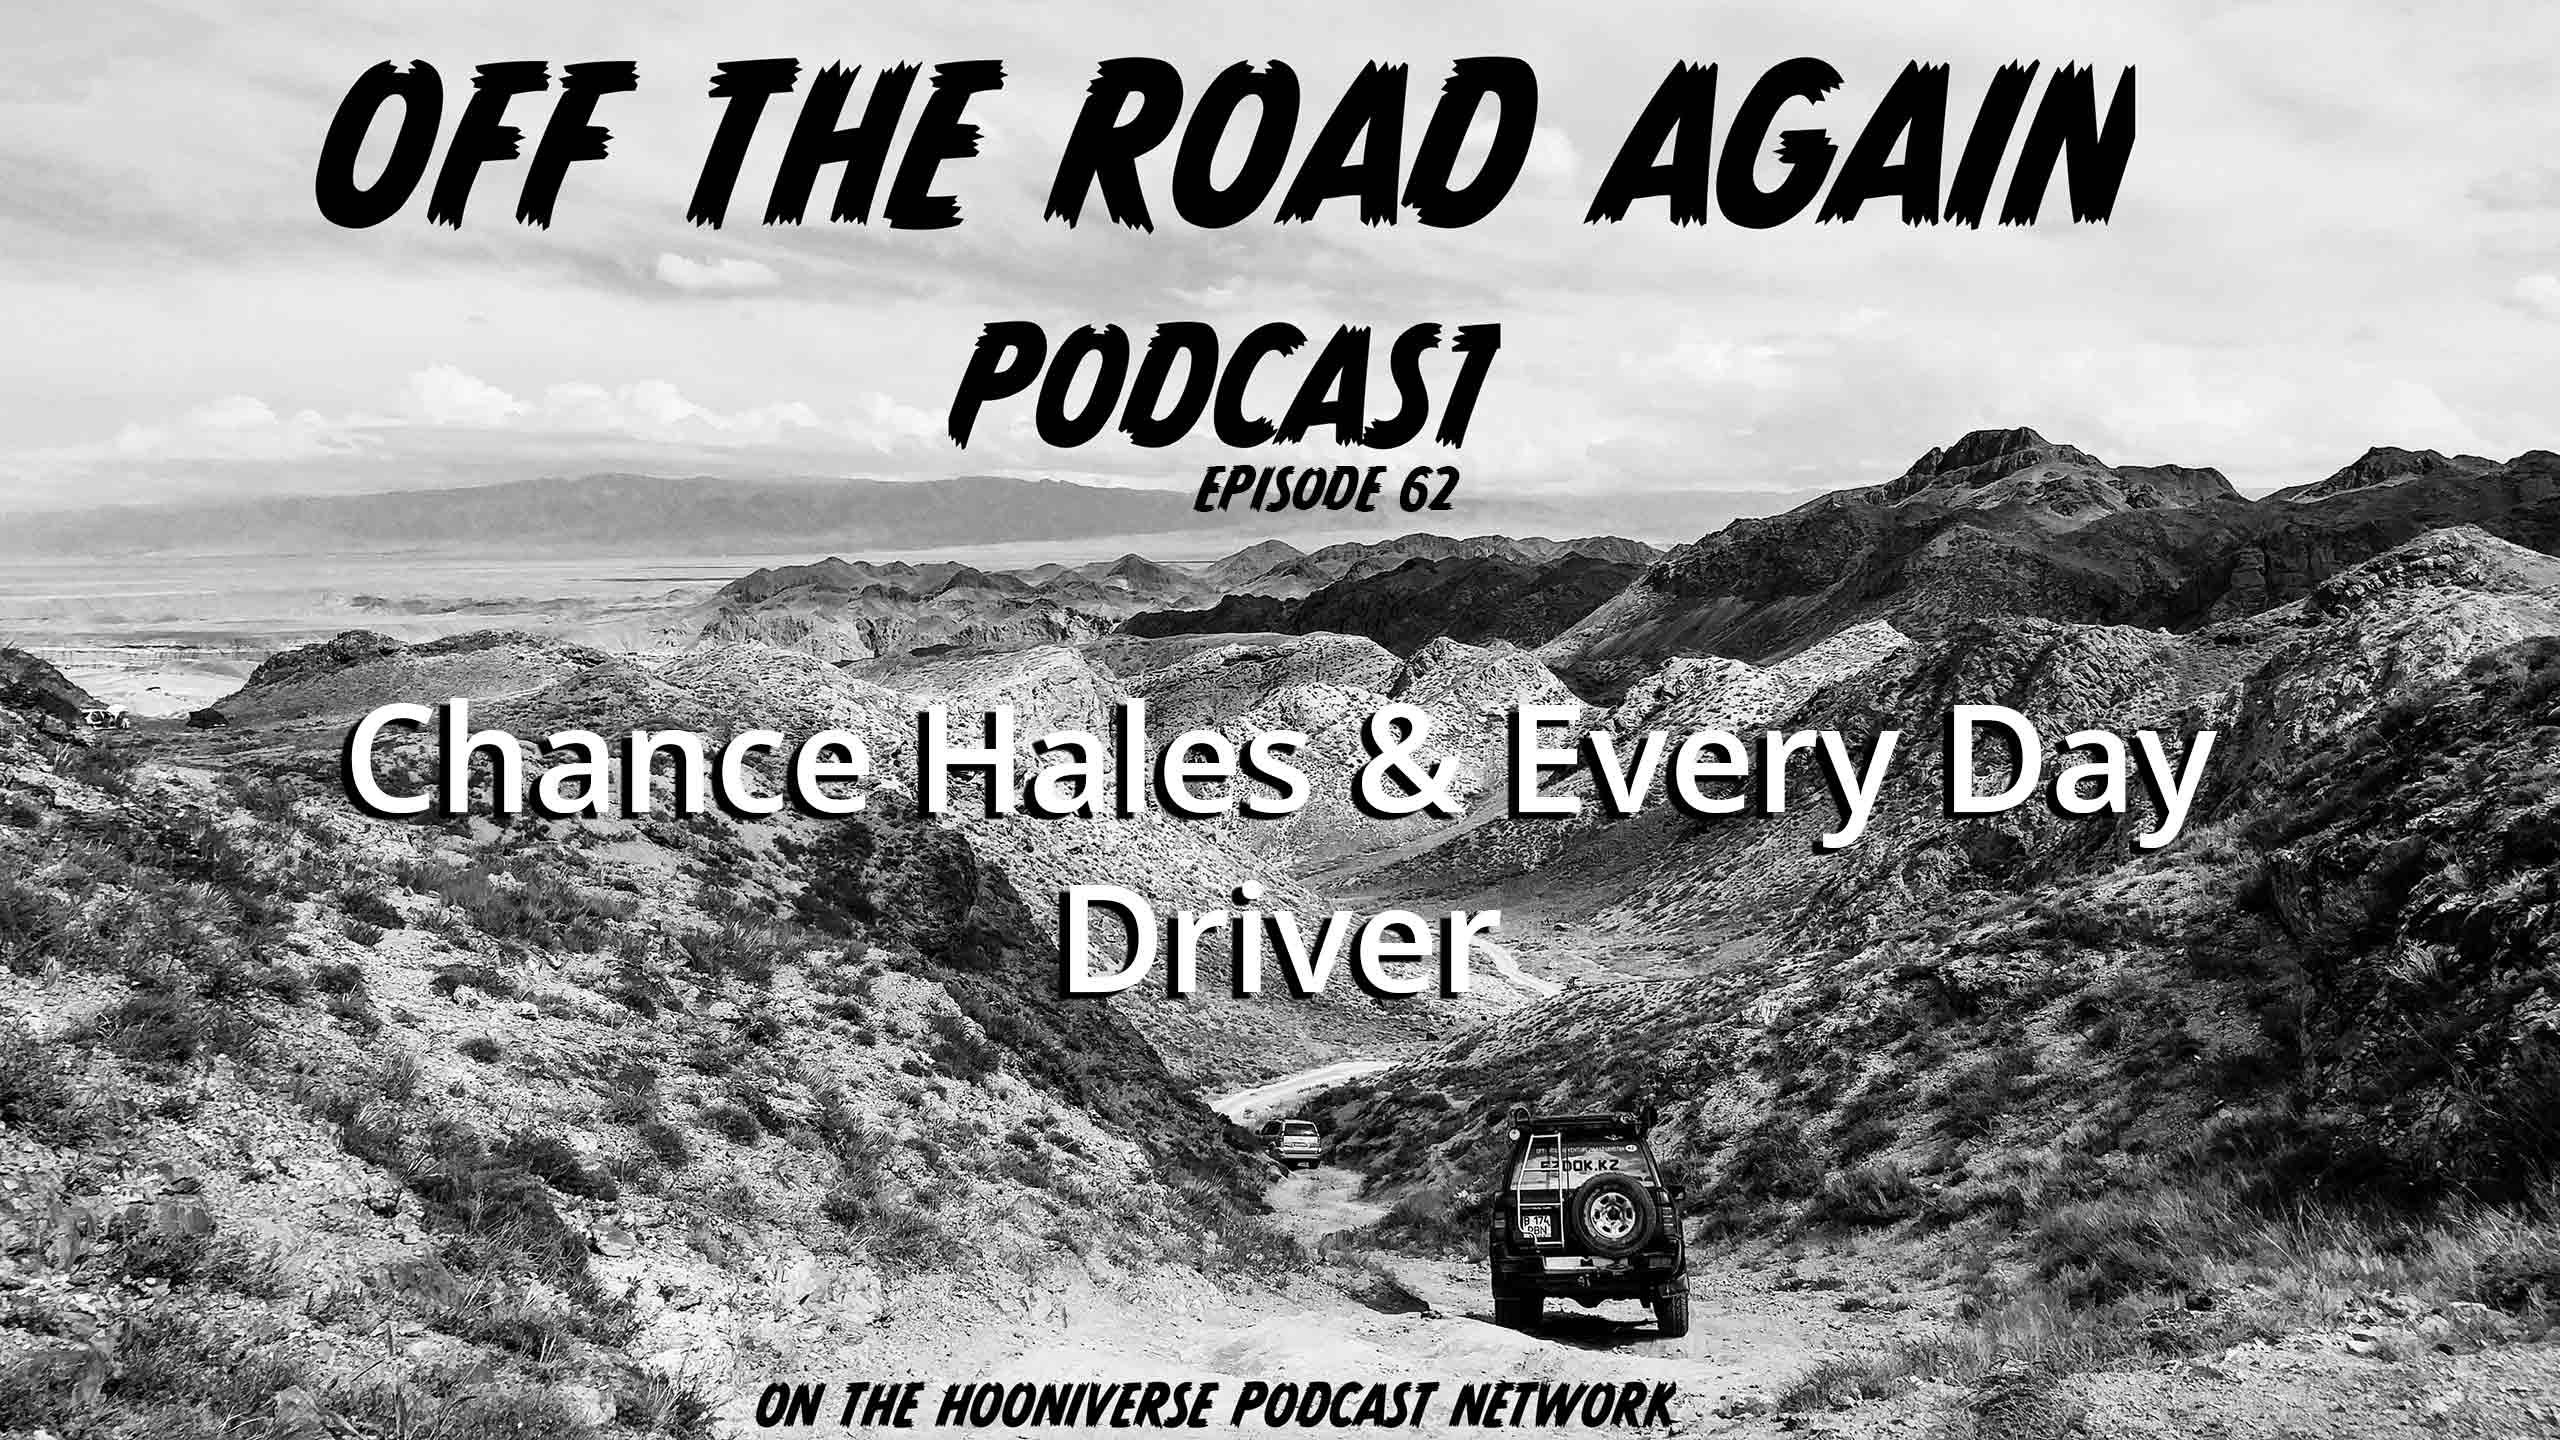 Chance-Hales-Everyday-Driver-Off-The-Road-Again-Podcast-Episode-62